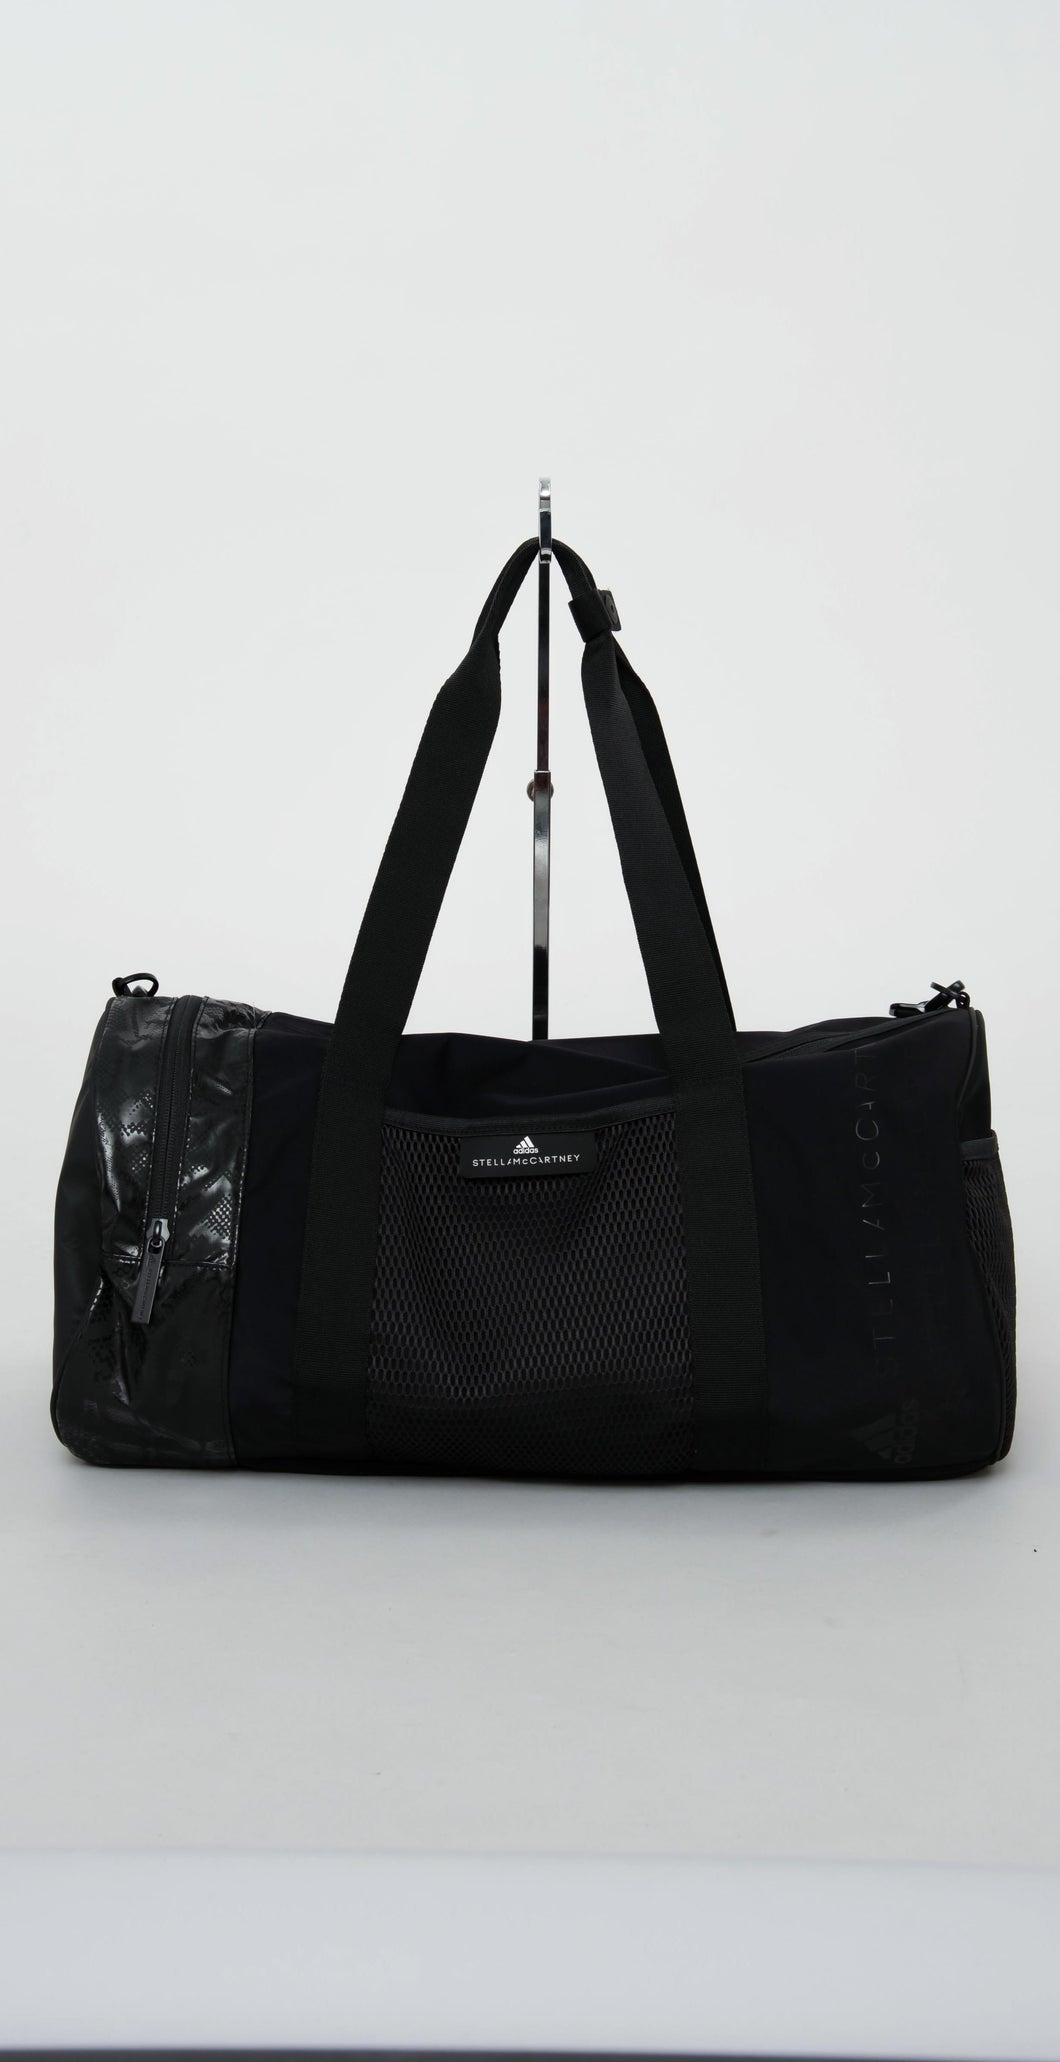 Adidas by Stella McCartney Round Duffle Bag Black